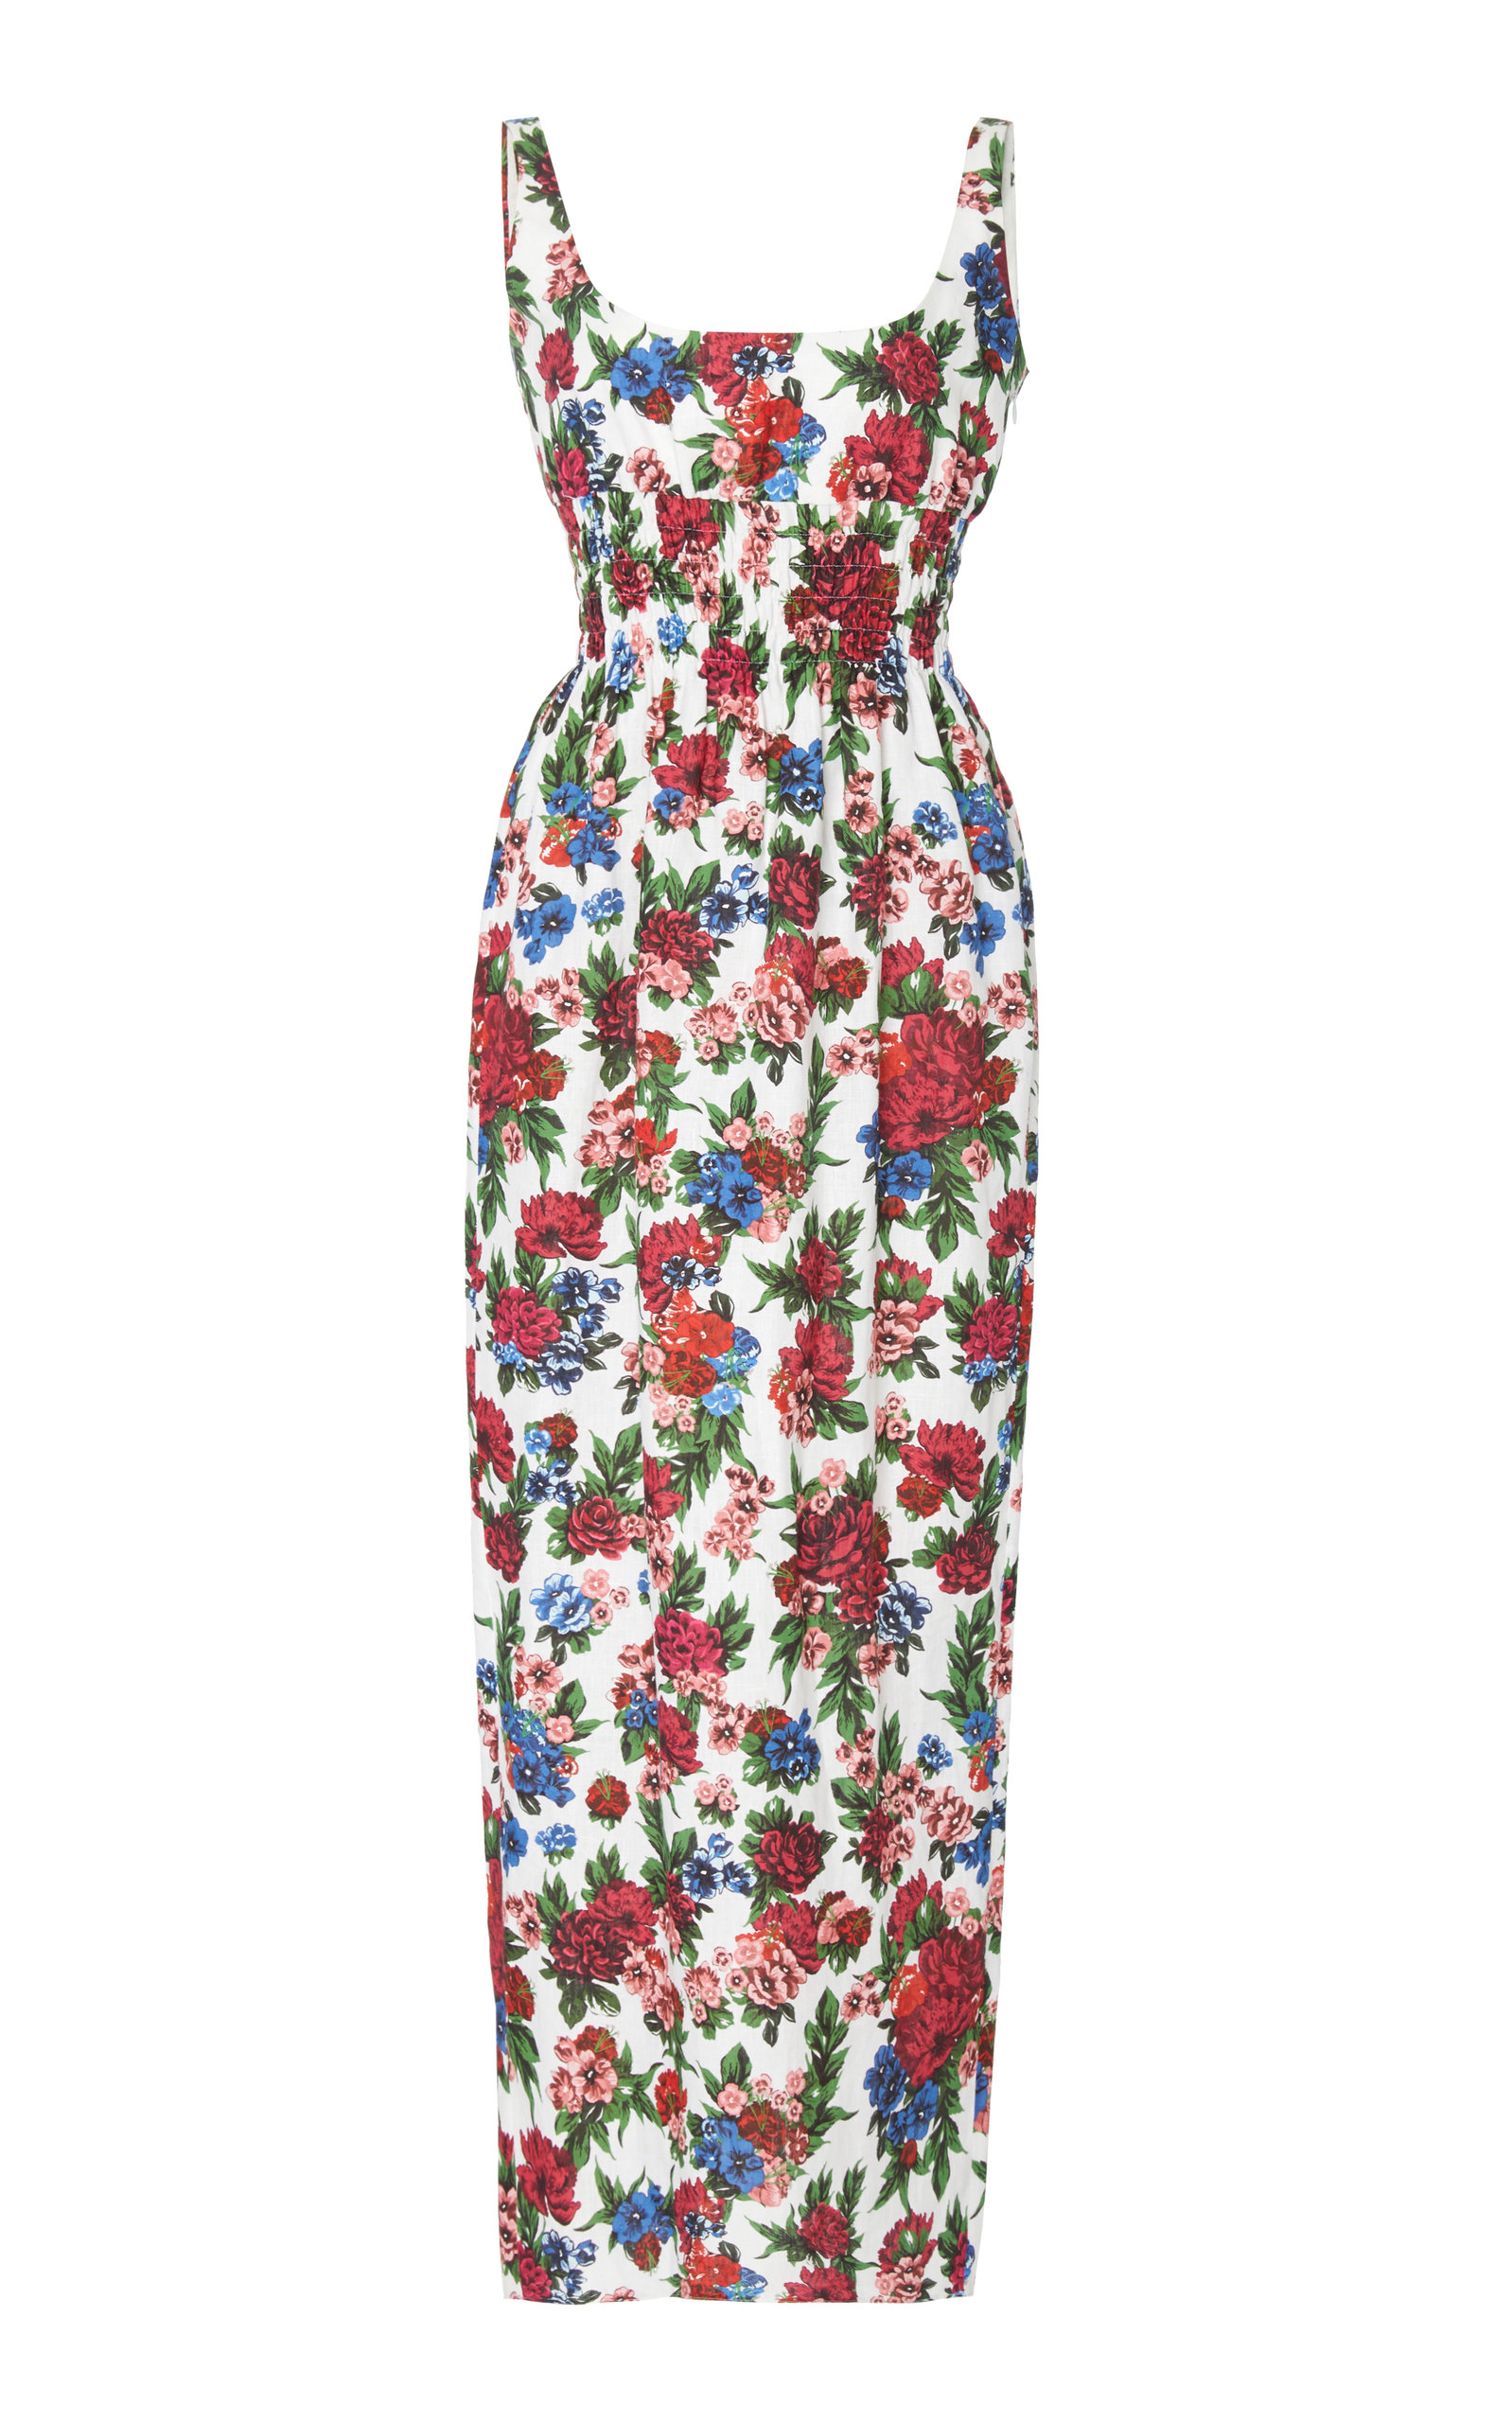 EMILIA WICKSTEAD M'O EXCLUSIVE MINDY FLORAL MAXI DRESS